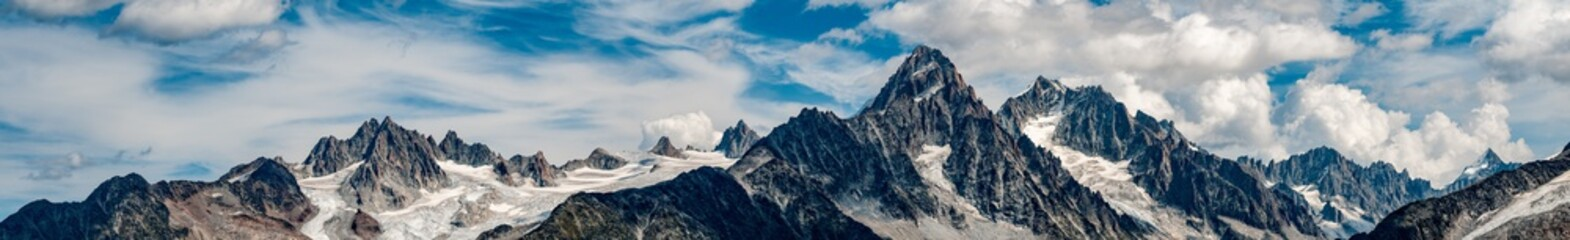 Panorama the Aiguille du Chardonnay and surrounds above Argentiere and Chamonix with cloudy blue sky